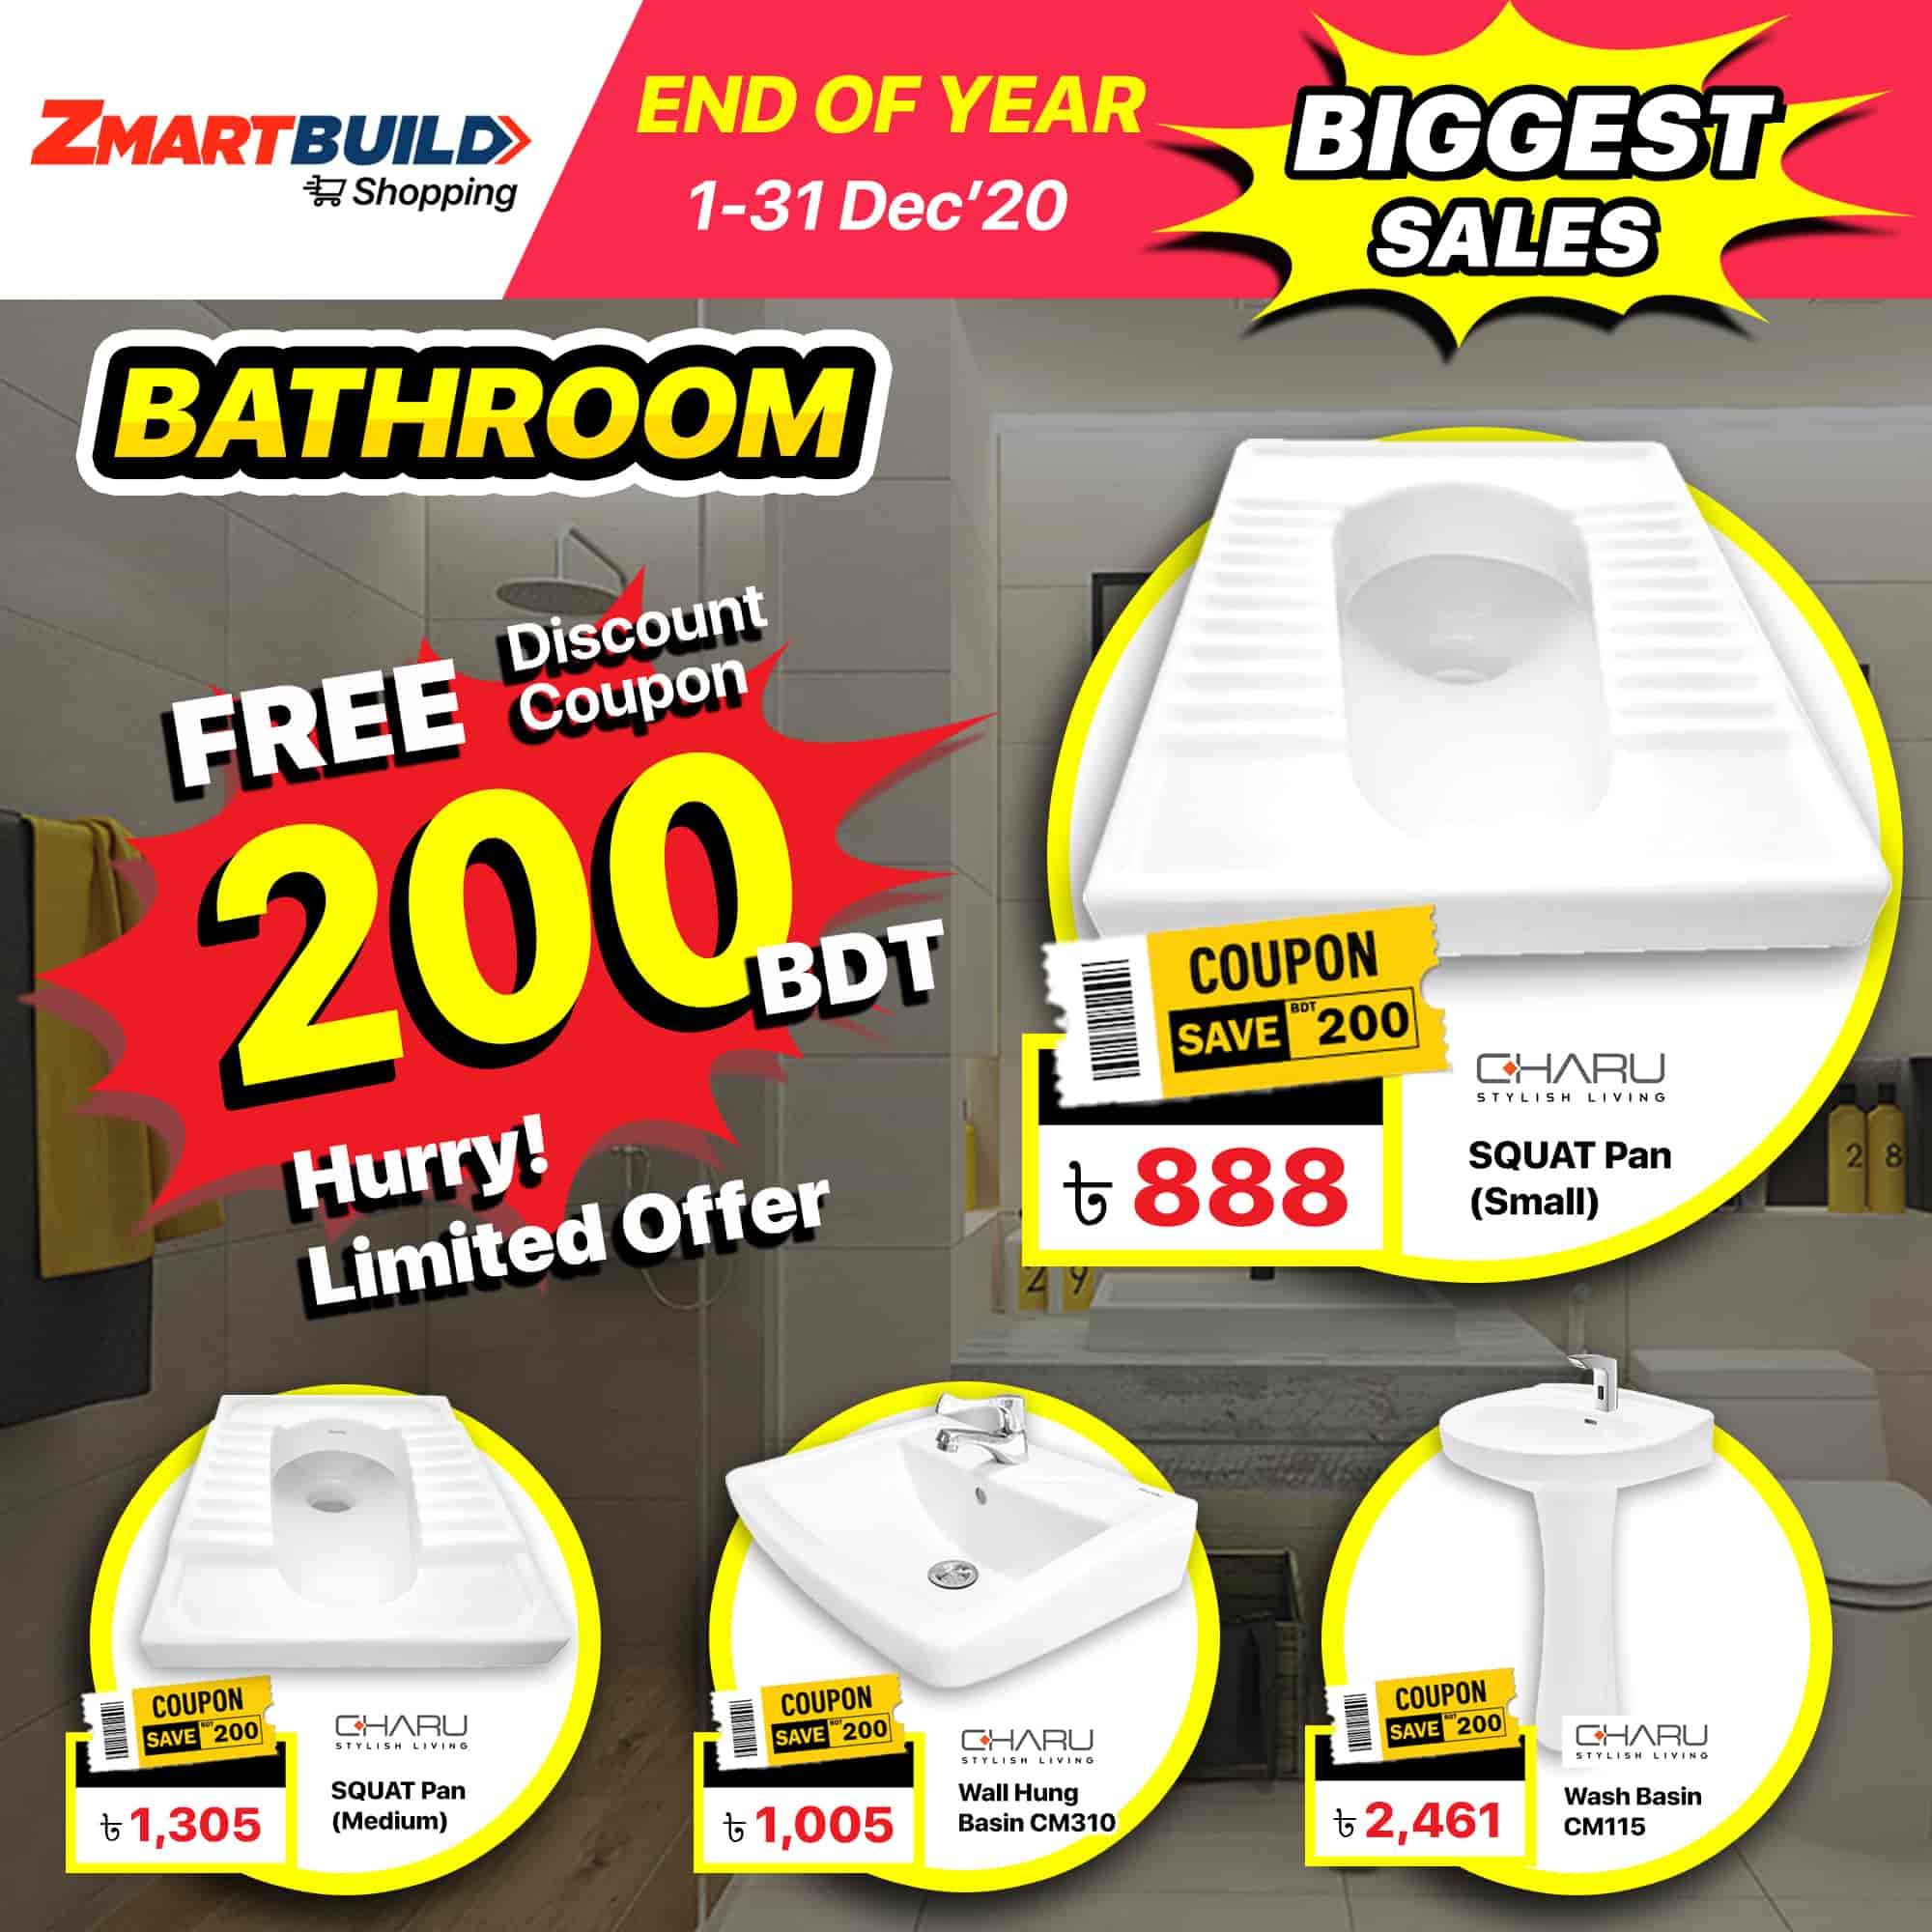 END OF YEAR BIGGEST SALE - Good Value Commode Dec'20 - Ver Coupon resize